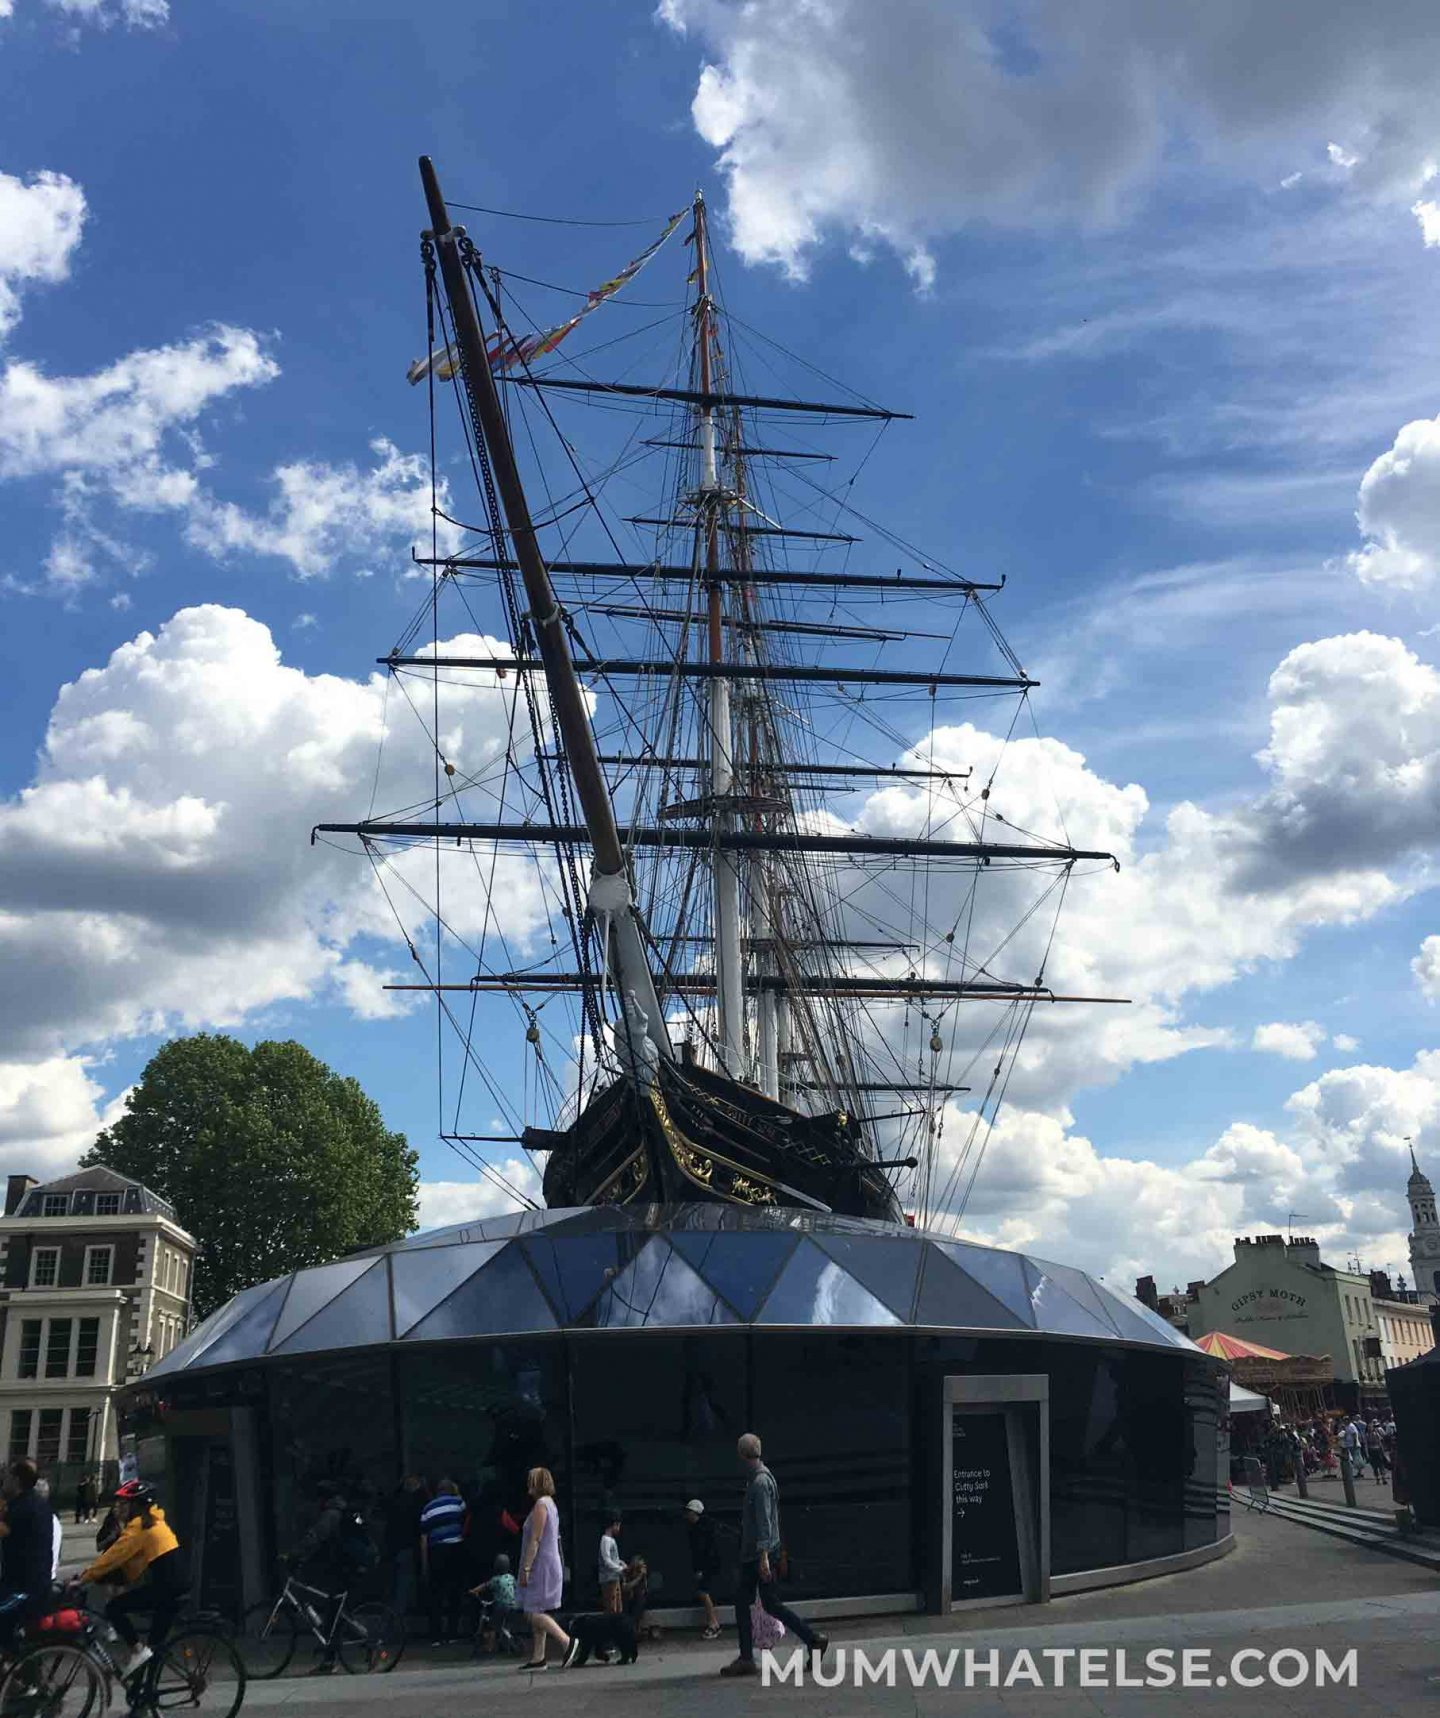 External view of the Cutty Sark